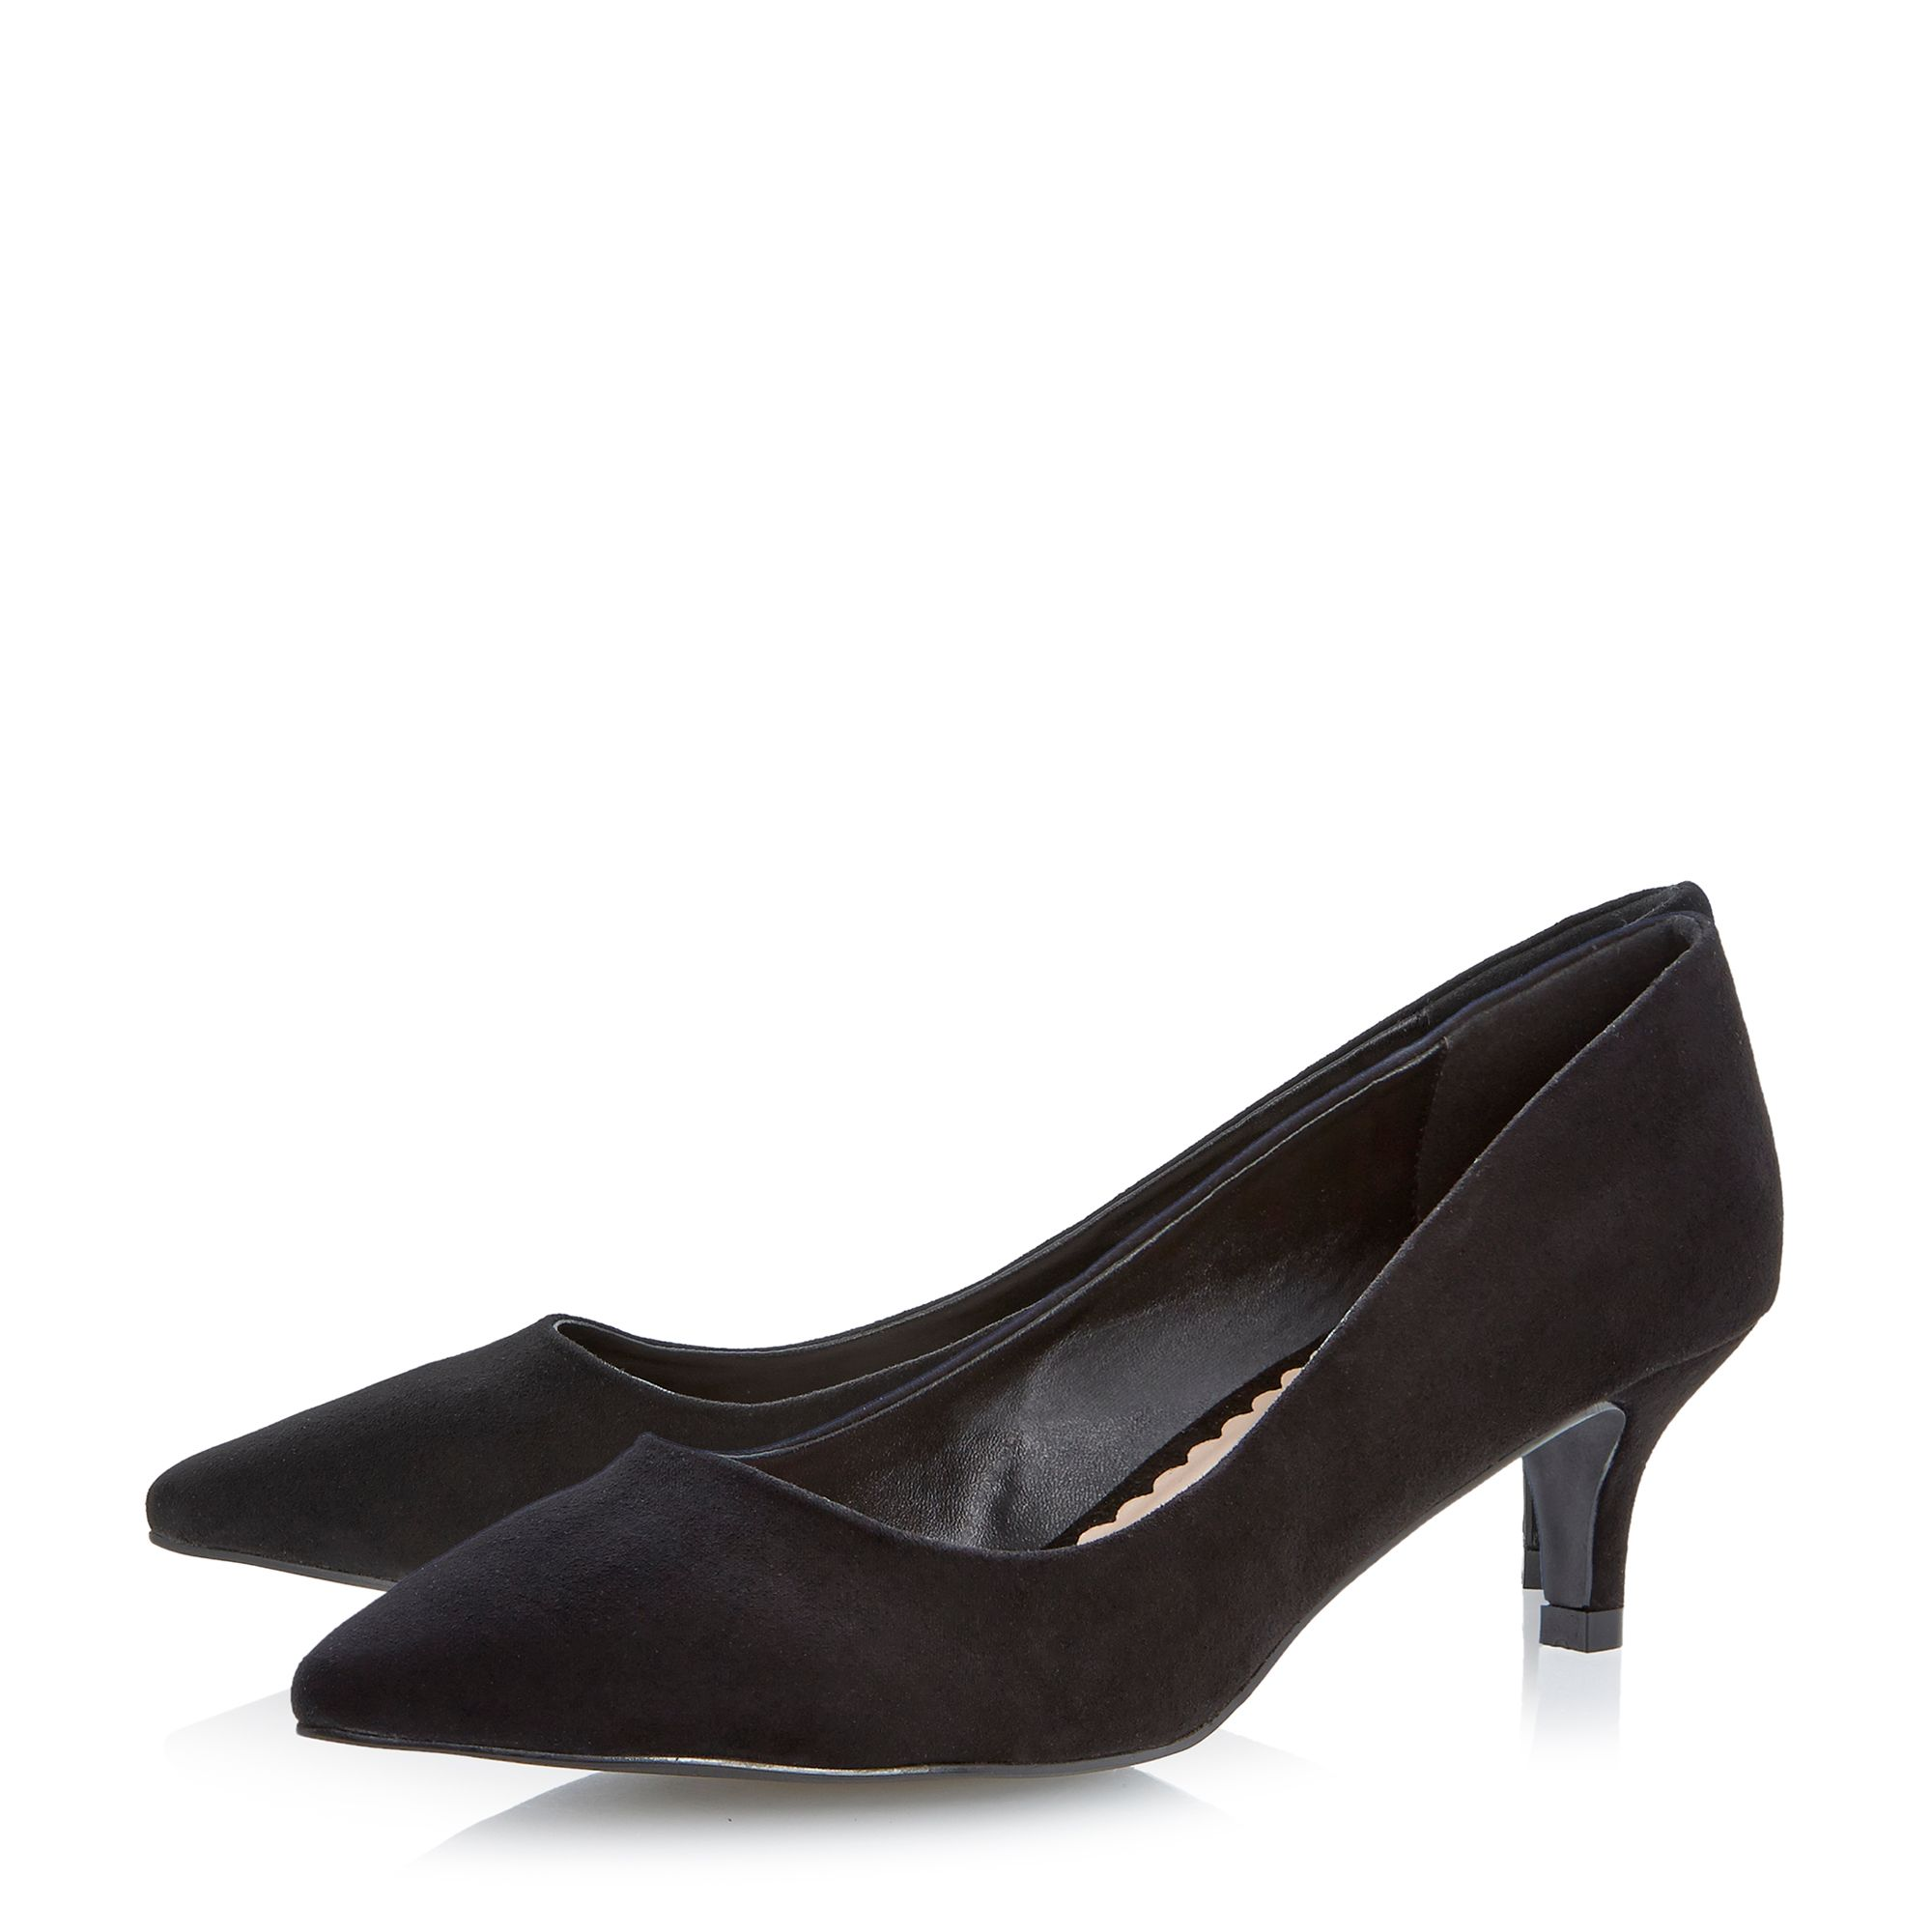 Aneka kitten heel court shoes